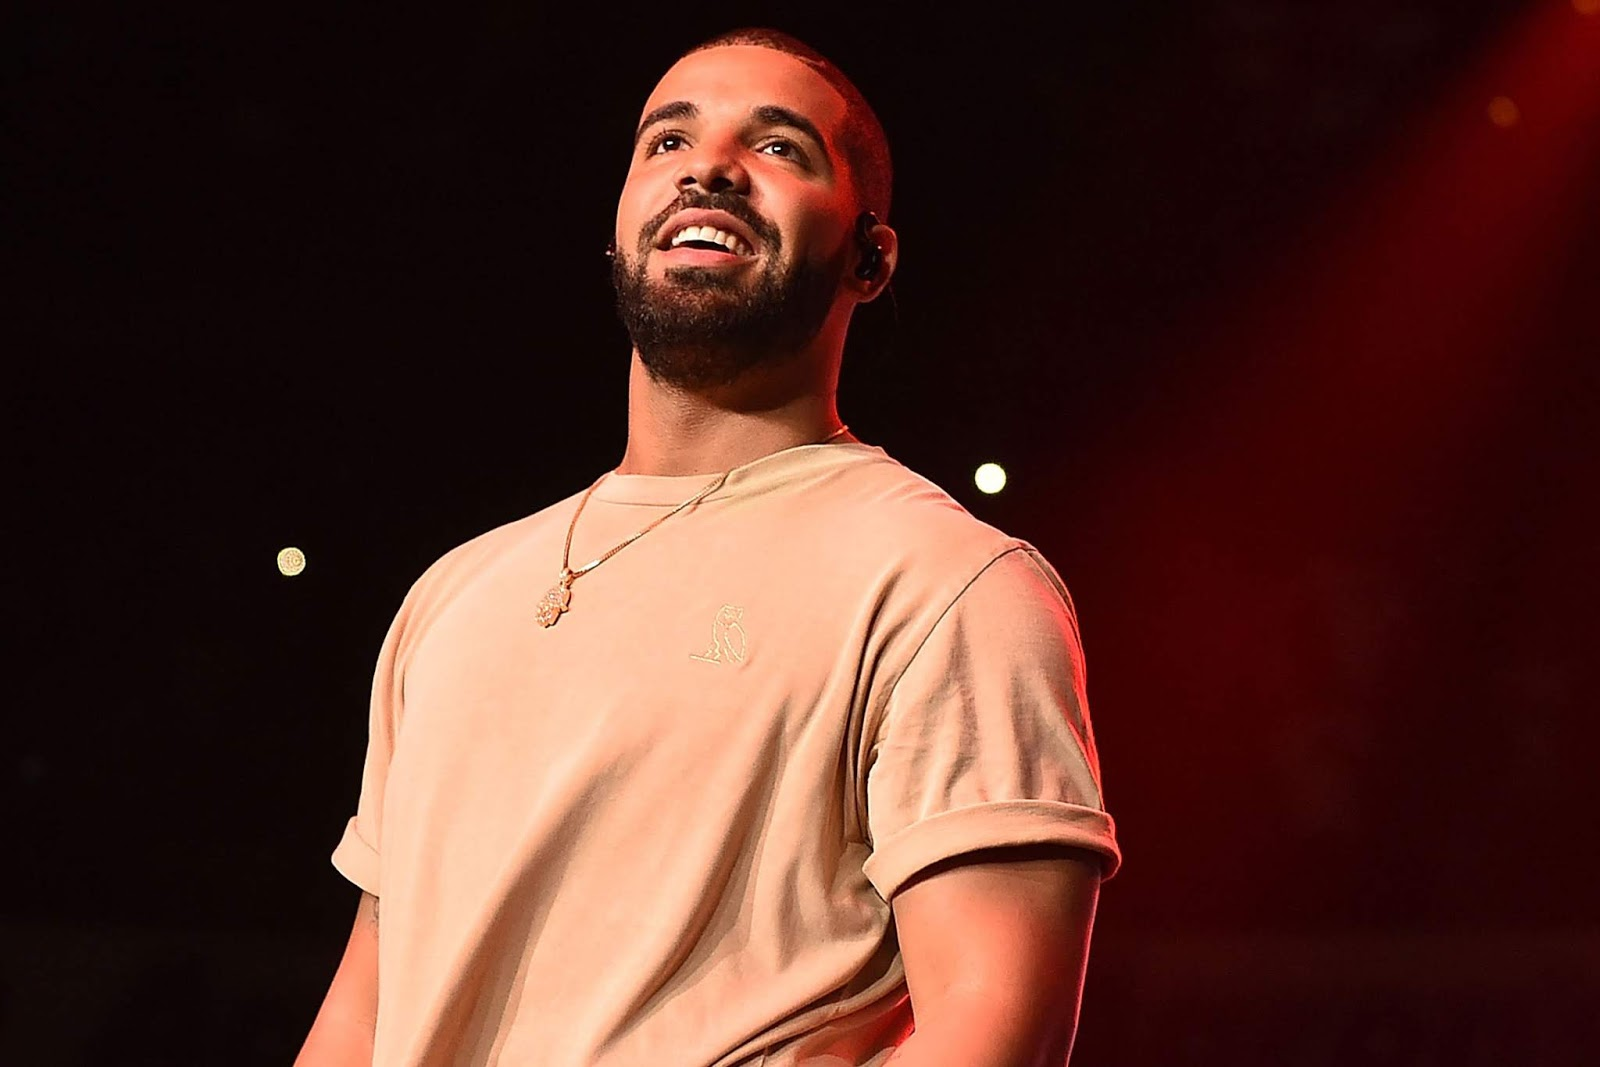 Drake Drops New Song, 'I'm Upset,' Thankfully Unrelated to Feud With Kanye West & Pusha T